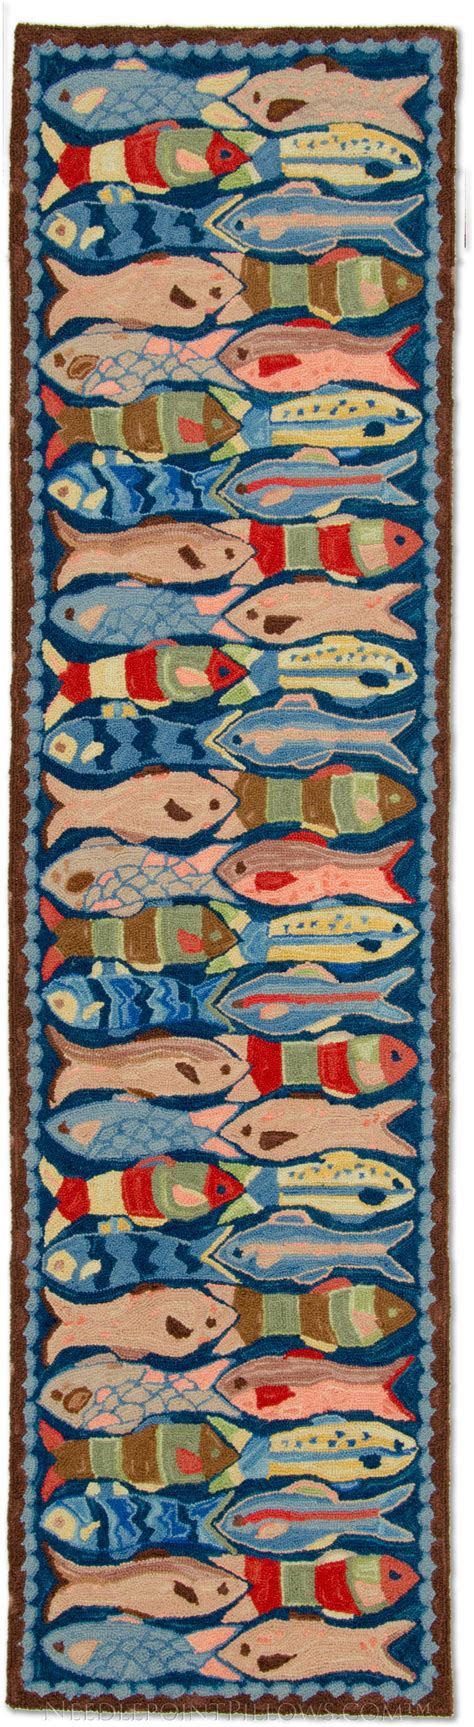 Nautical Runner Rug Handmade Nautical Fish Hooked Runner